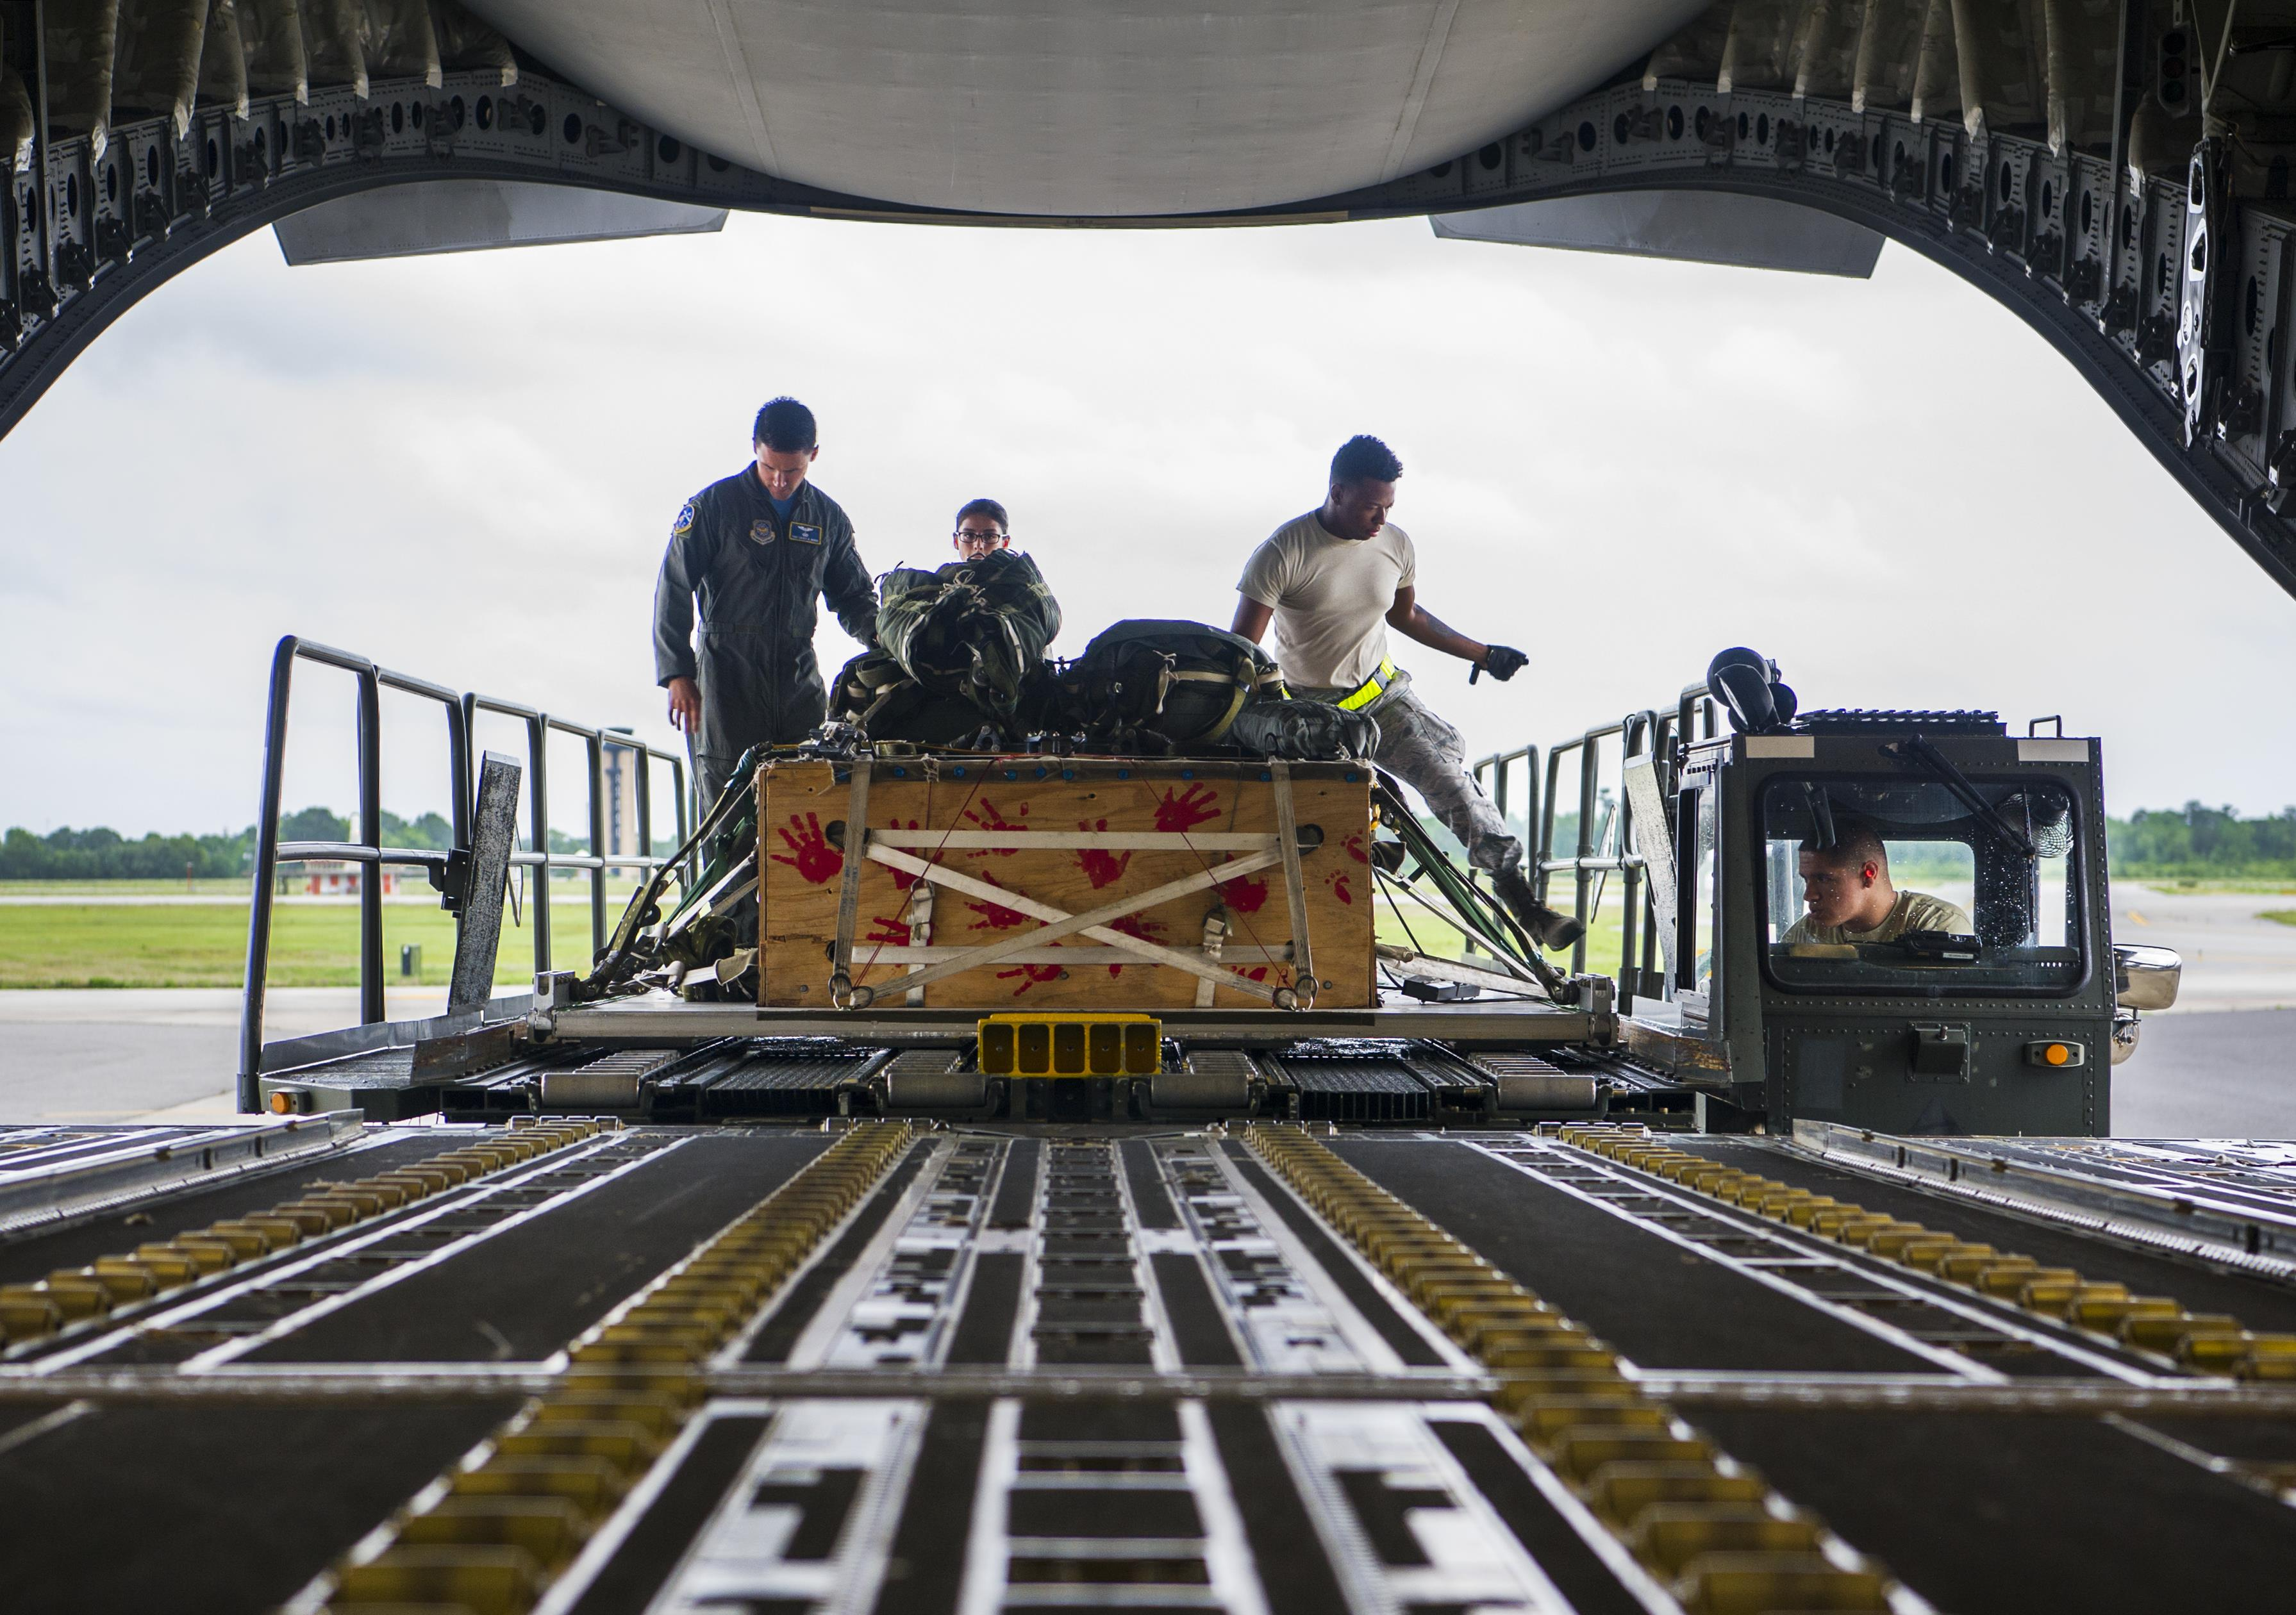 14th Airlift Squadron conducts cargo drop training